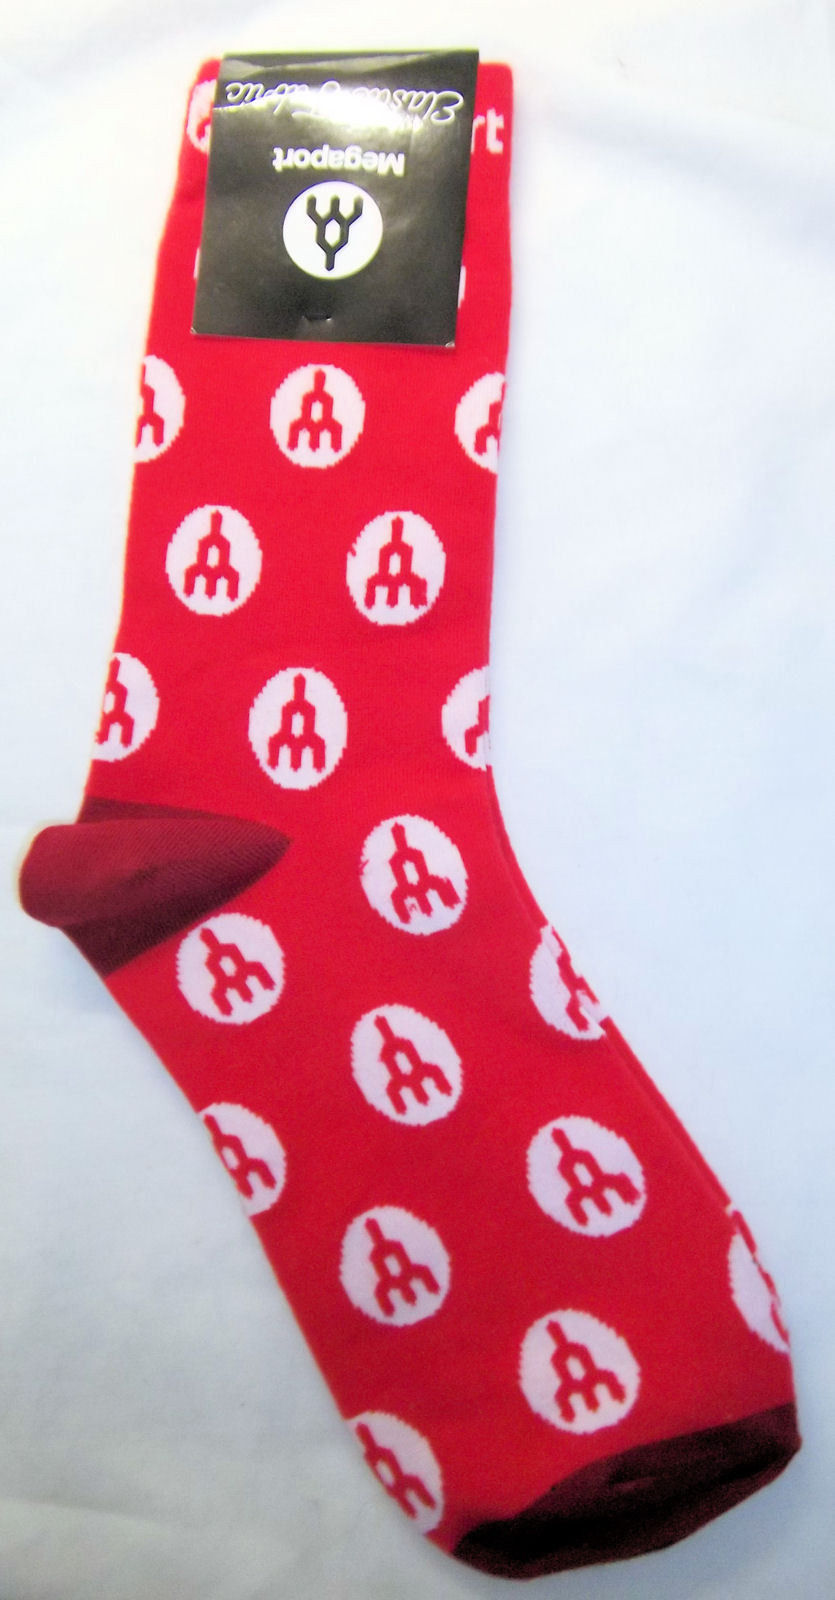 Megaport Men's Socks Red White Logo Cloud Connections Size 8 to 14 NWT